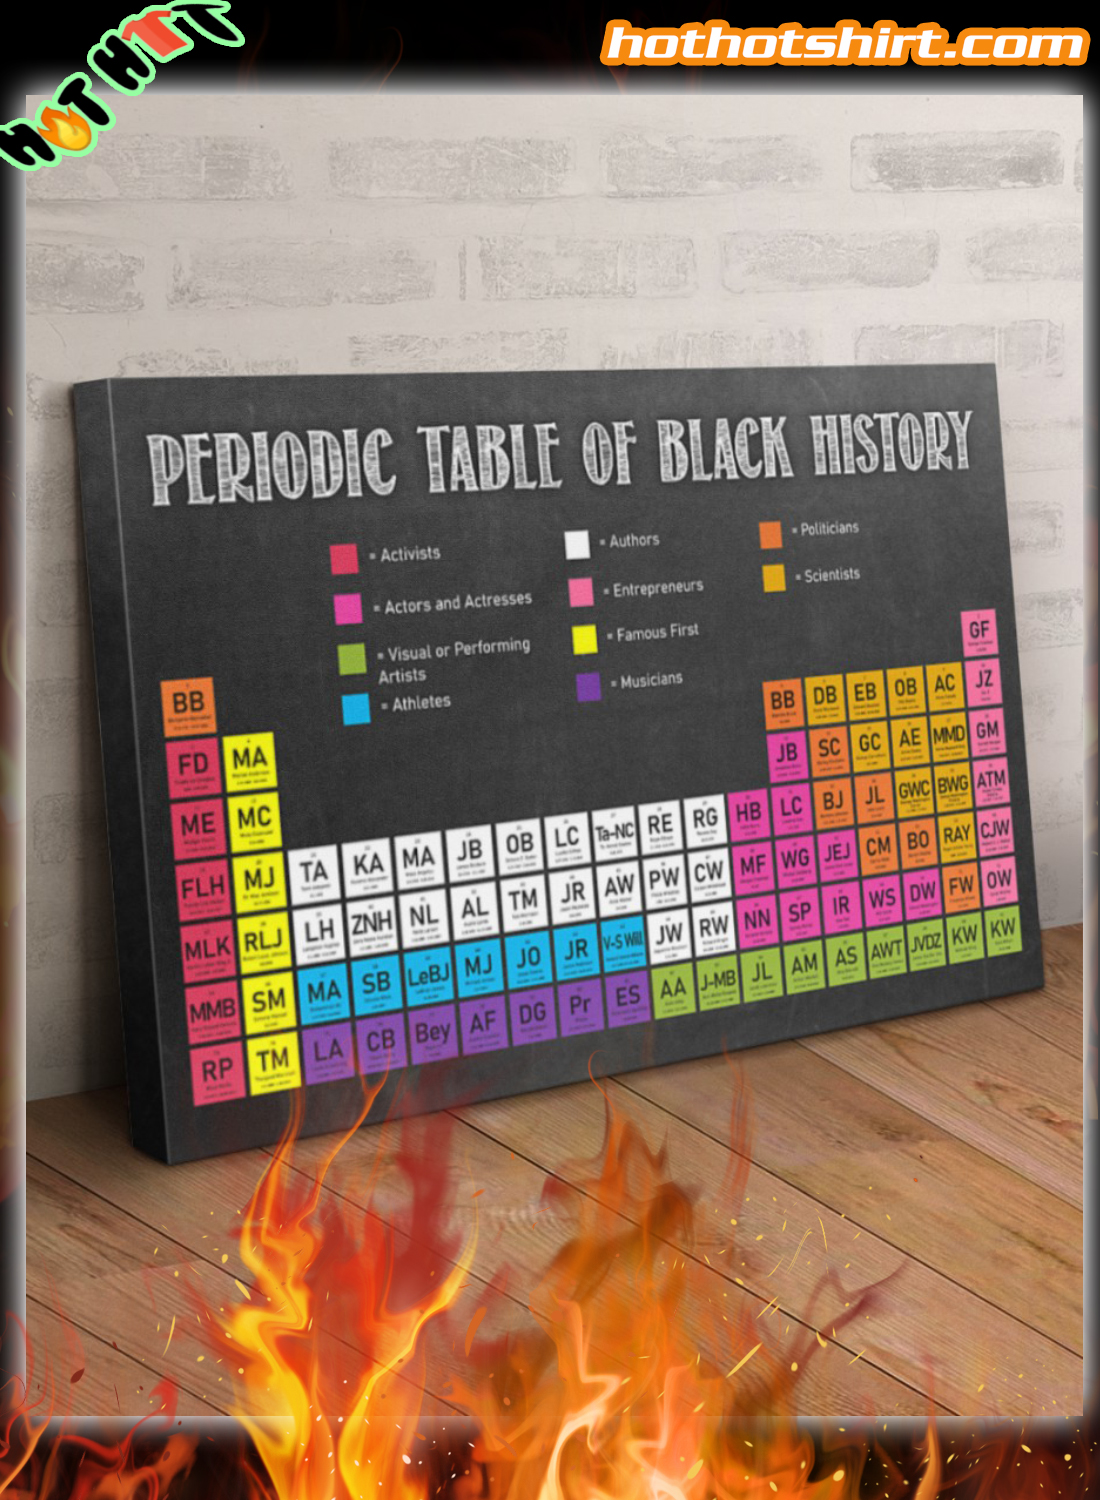 Periodic table of black history poster and canvas print